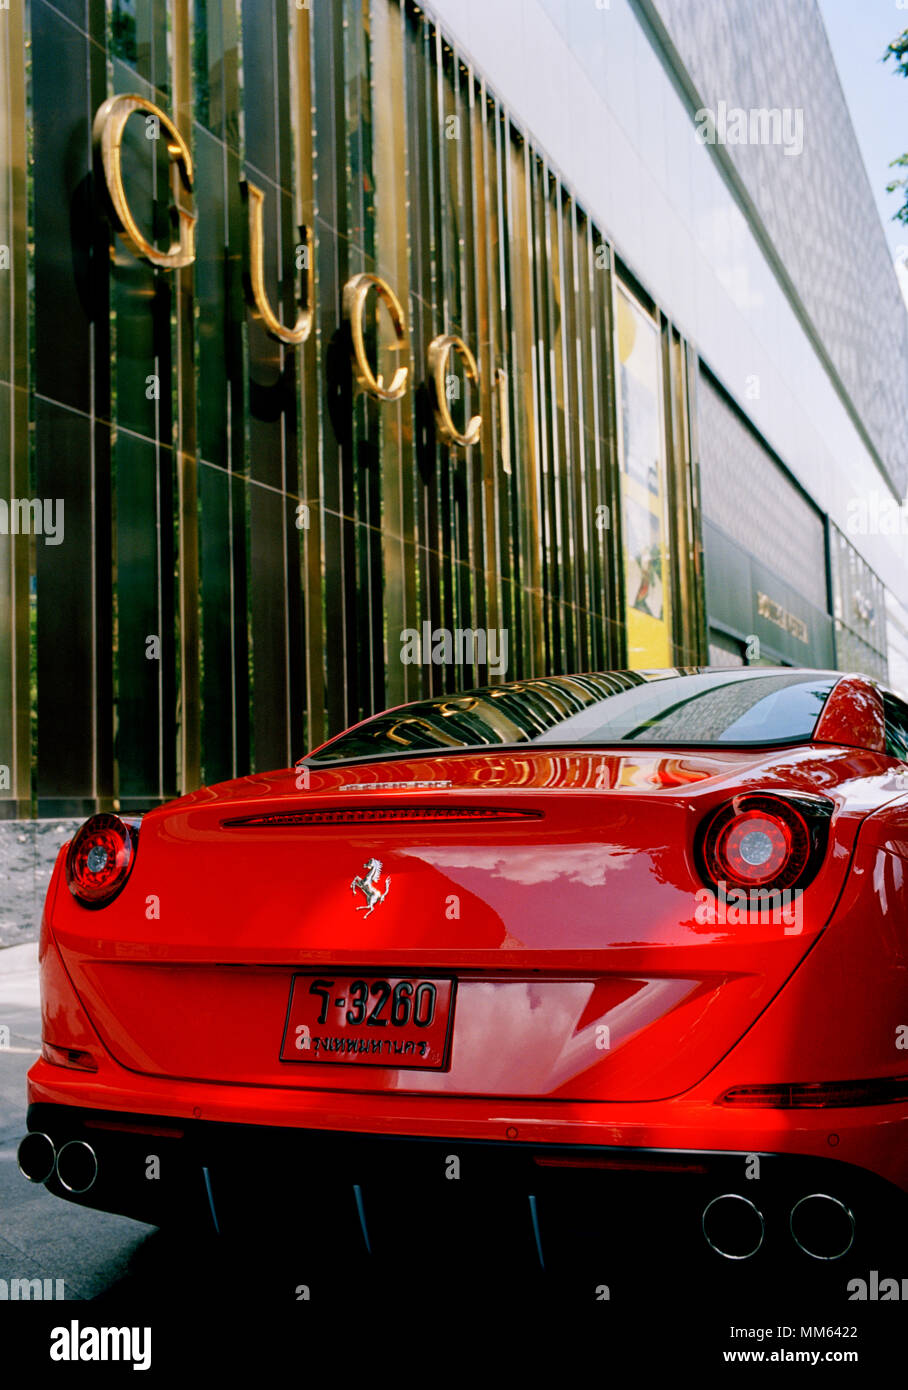 Transport - Classic Super Car - Ferrari in Sukhumvit in Bangkok in Thailand in Southeast Asia Far East. Gucci Wealth Wealthy Money Rich Lifestyle - Stock Image